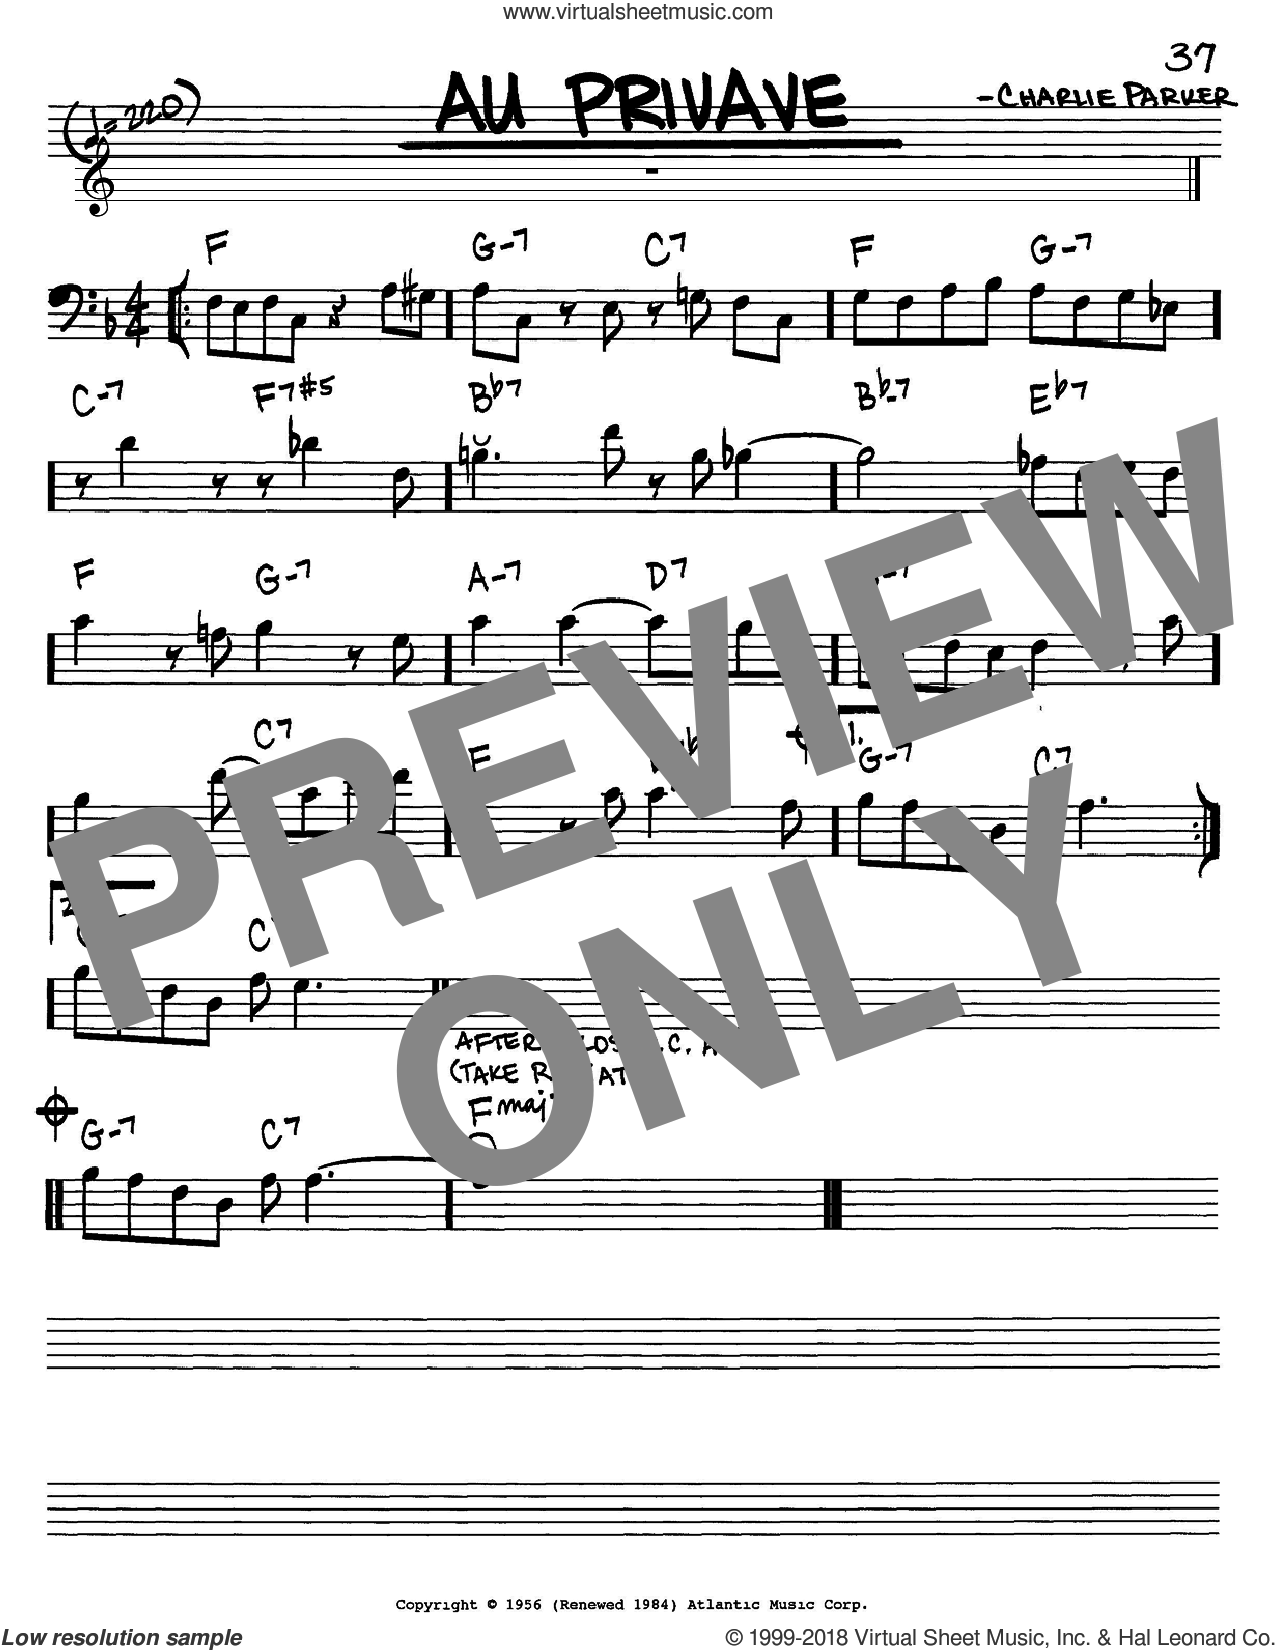 Au Privave sheet music for voice and other instruments (Bass Clef ) by Charlie Parker